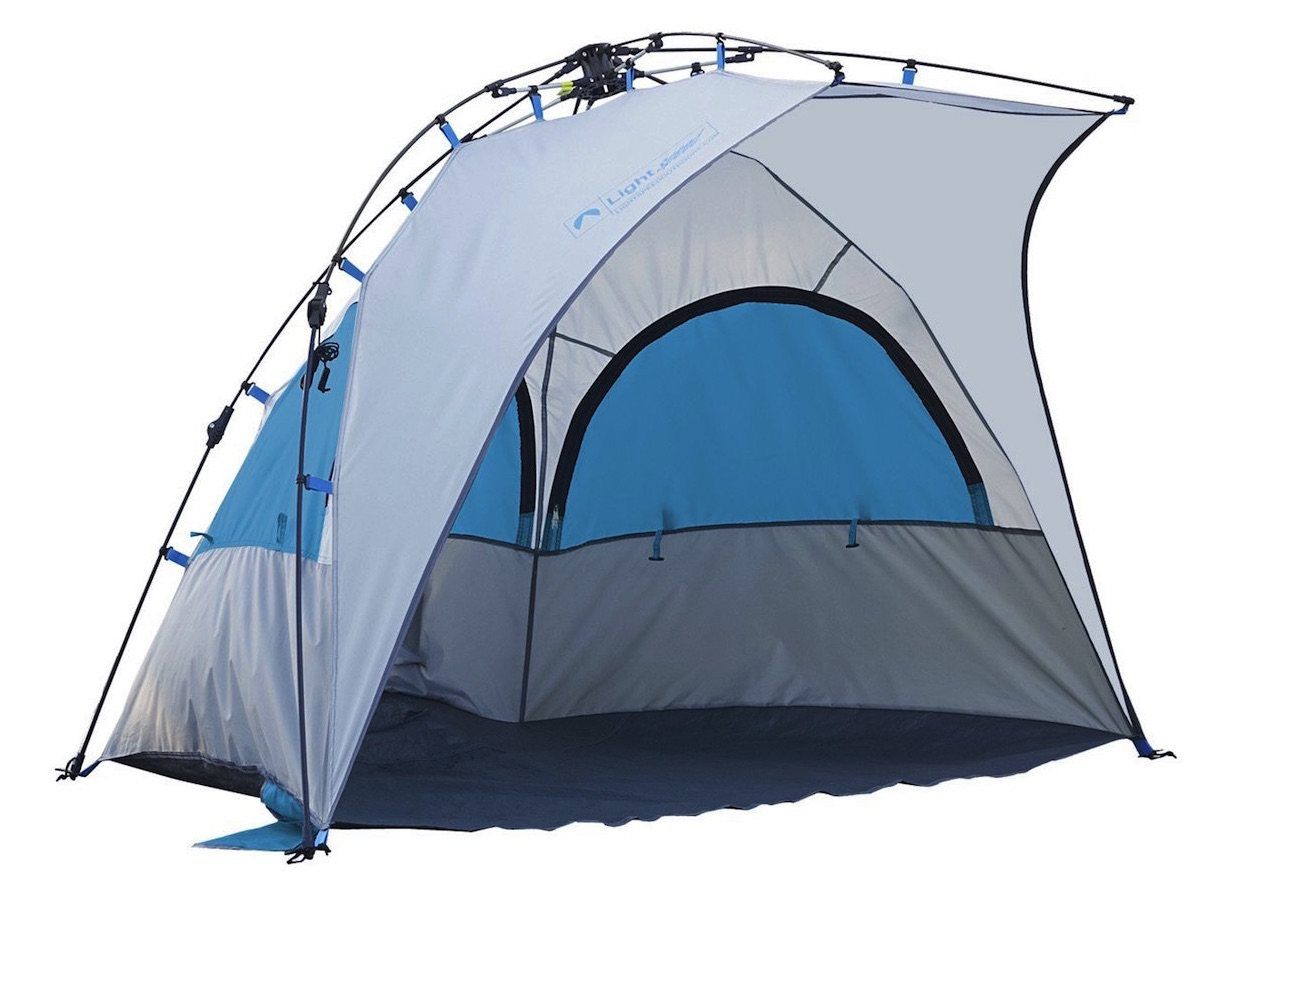 Bahia Quick Shelter u2013 Protective Sun Shelter From Lightspeed Outdoors ...  sc 1 st  Gadget Flow & Bahia Quick Shelter - Protective Sun Shelter From Lightspeed ...